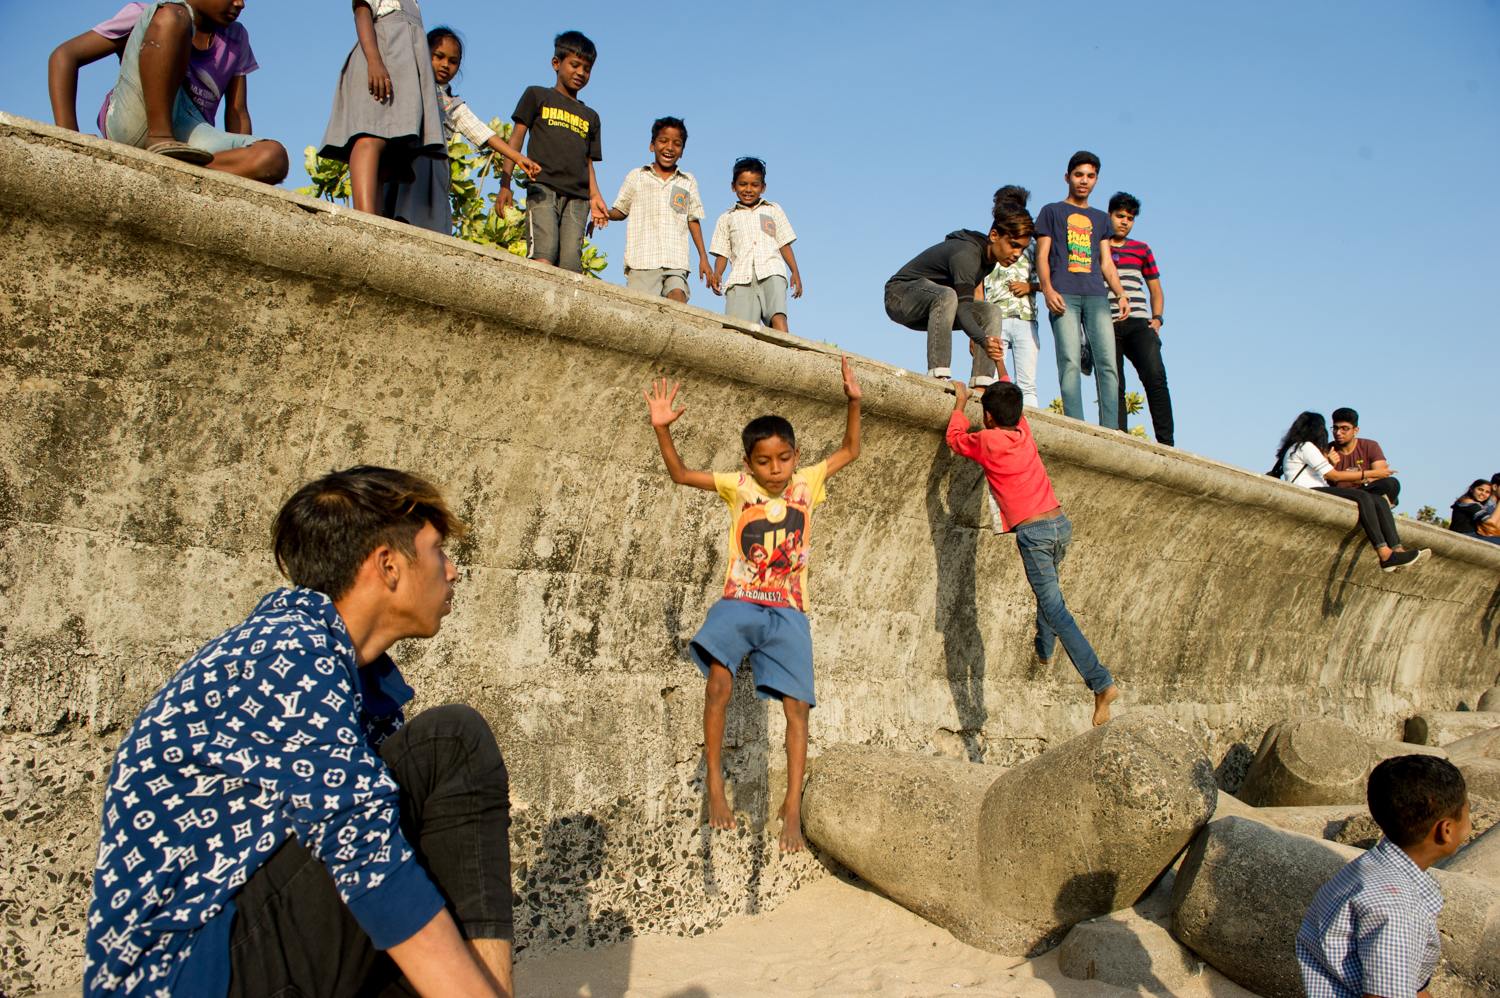 Children jumping off Boardwalk onto the Beach, Mumbai 2019